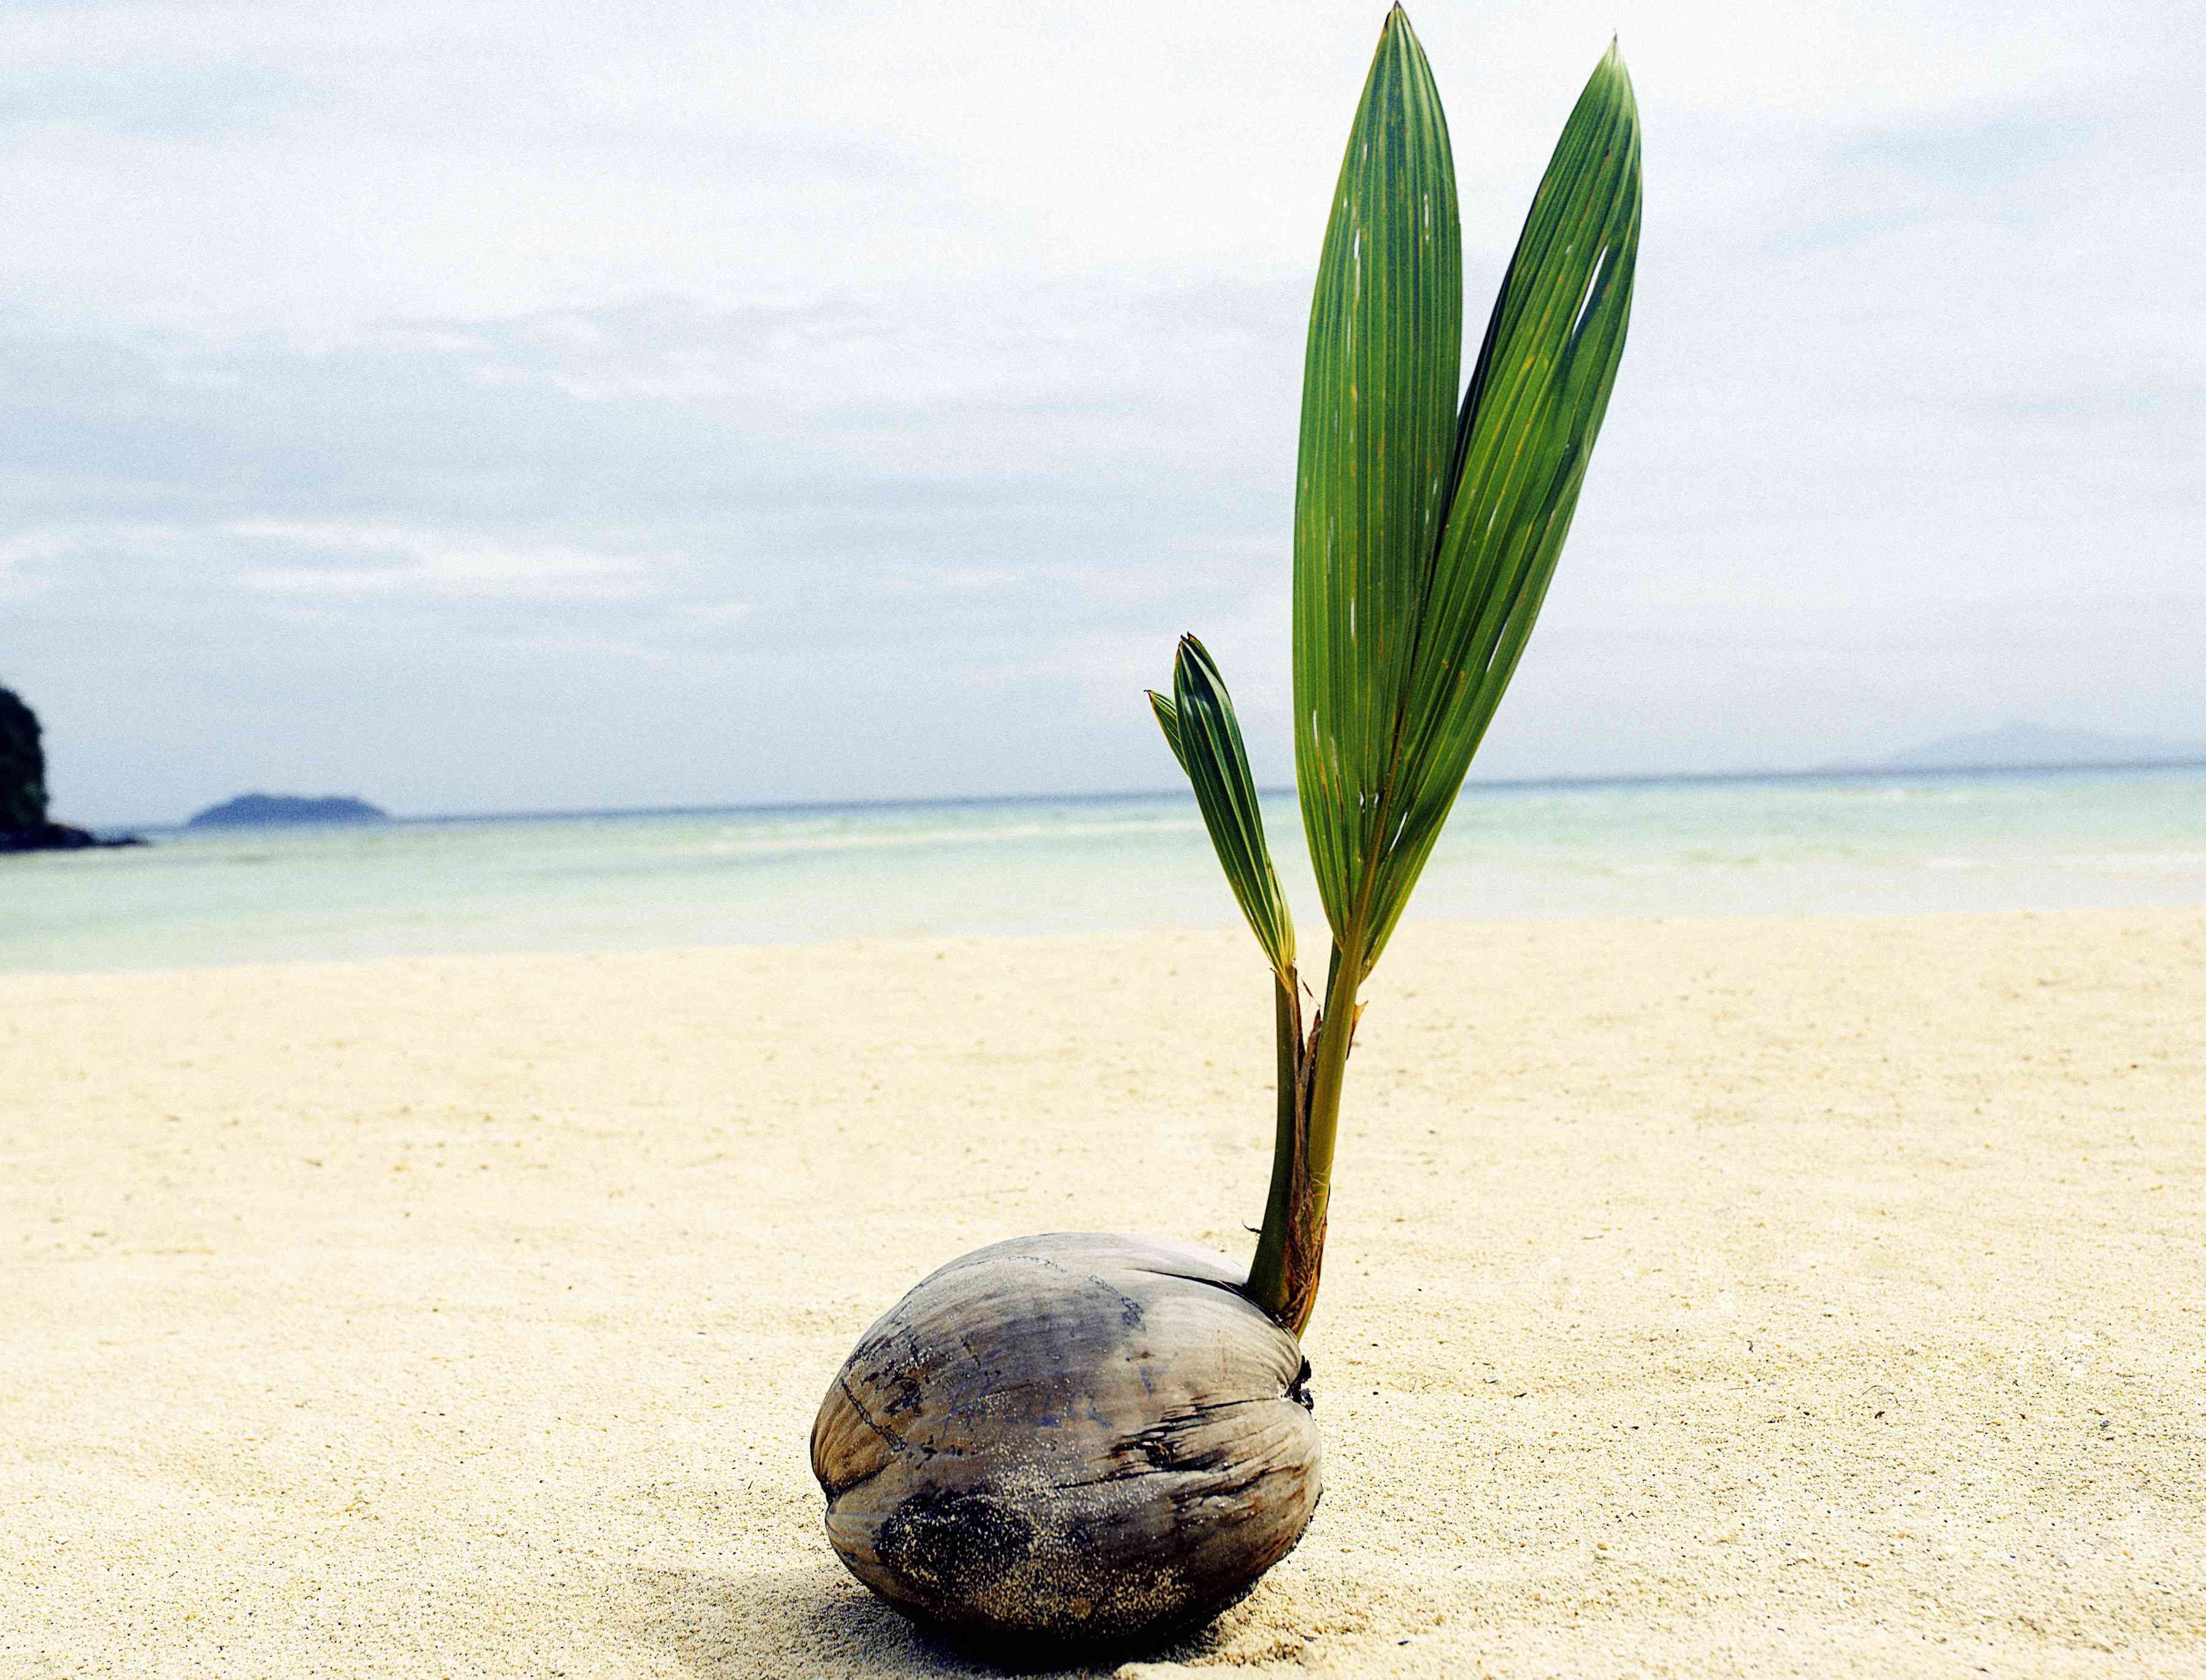 sprouting coconut on beach